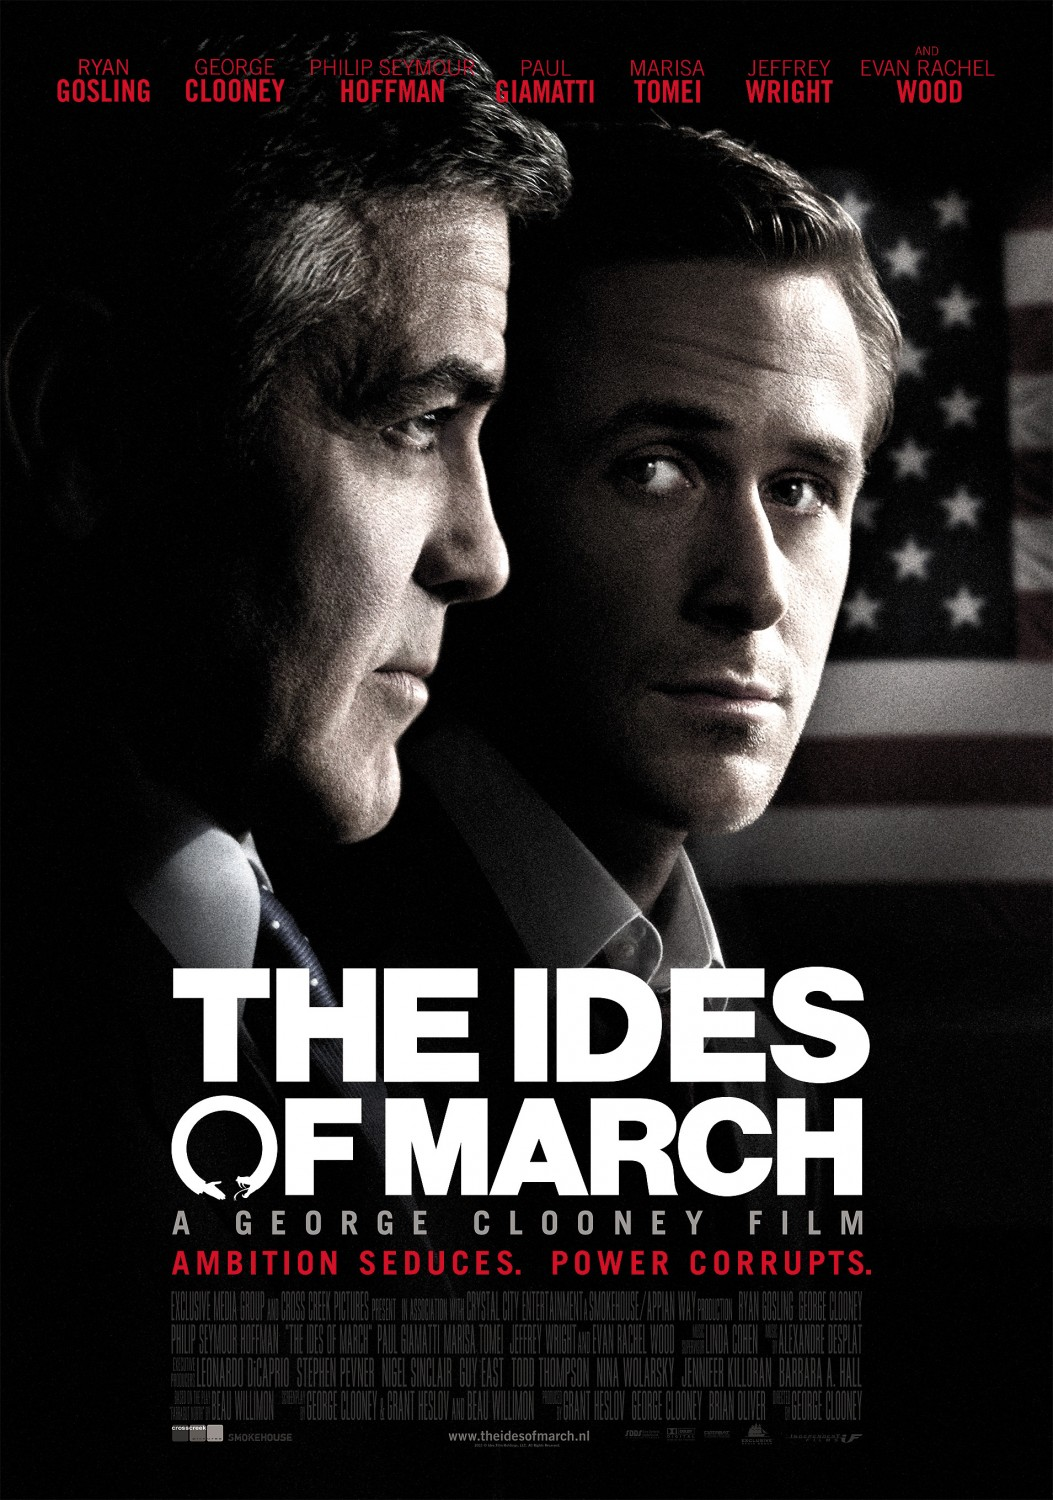 ides of march! - photo #10